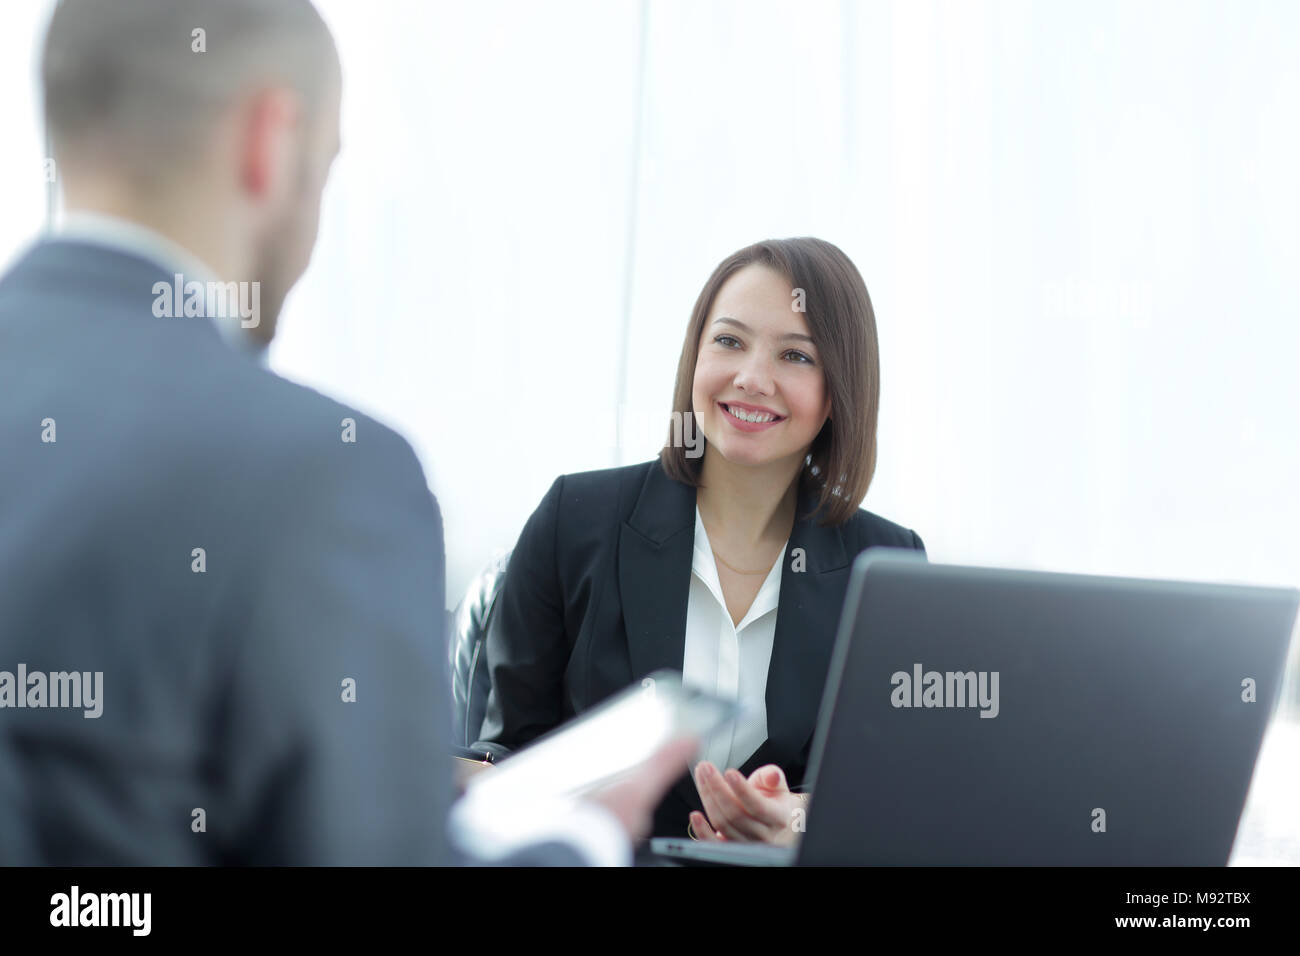 Successful job interview with boss - Stock Image